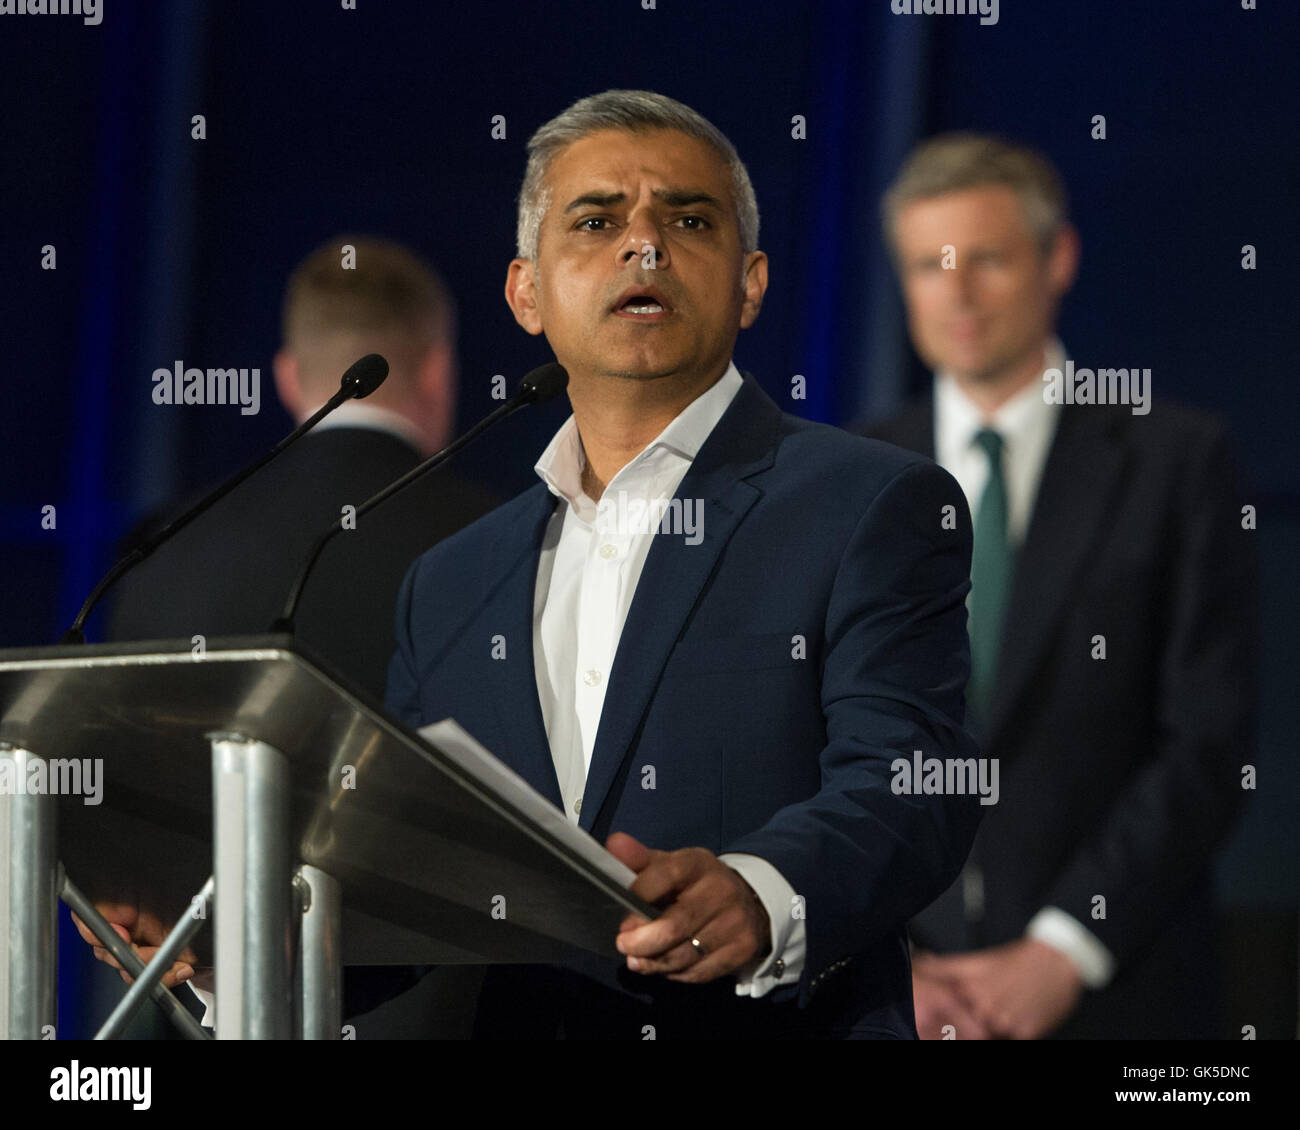 Sadiq Khan takes the stage after being elected as the new Mayor of London.  Featuring: Sadiq Khan Where: London, - Stock Image